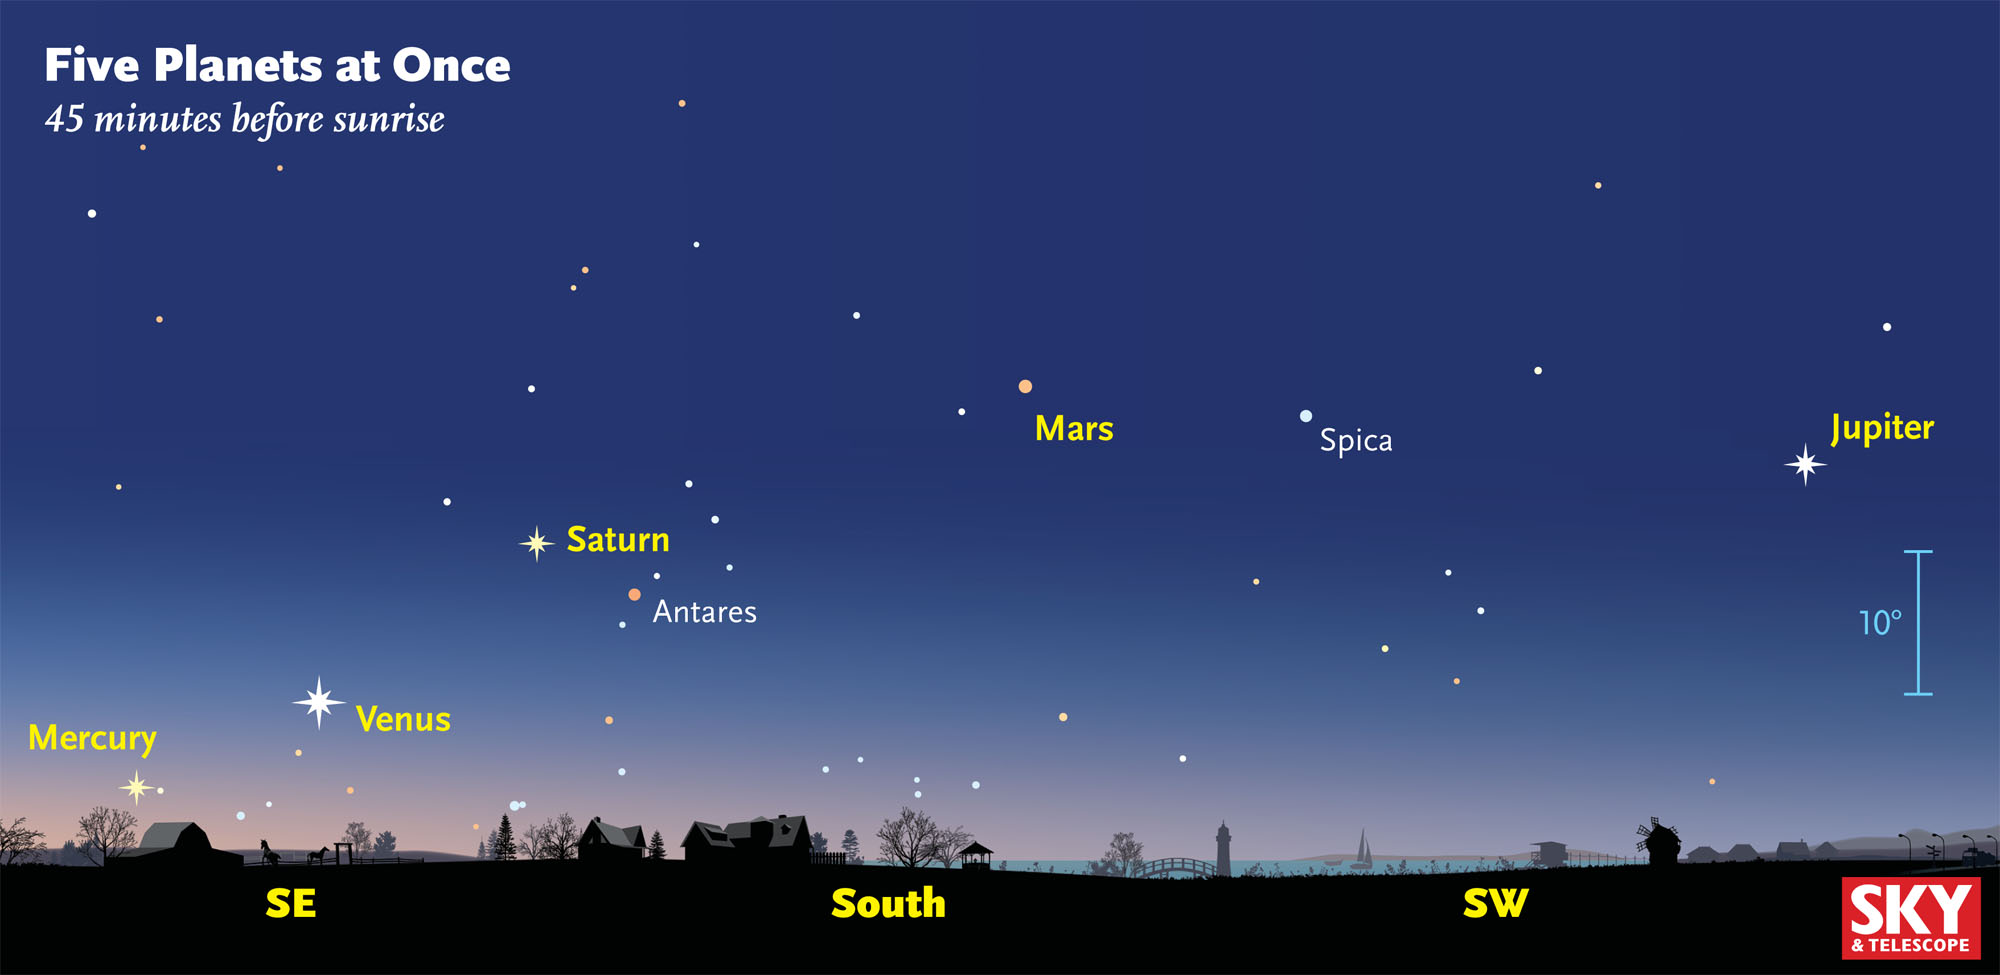 Five planets in the night sky Jan 25, 2016